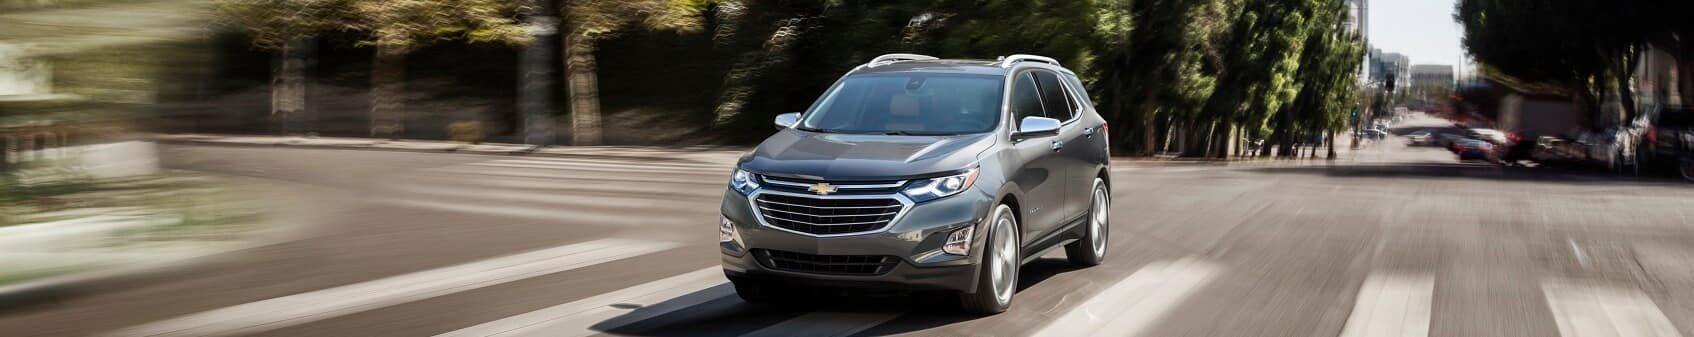 Chevy Equinox for Sale near Moon Township PA